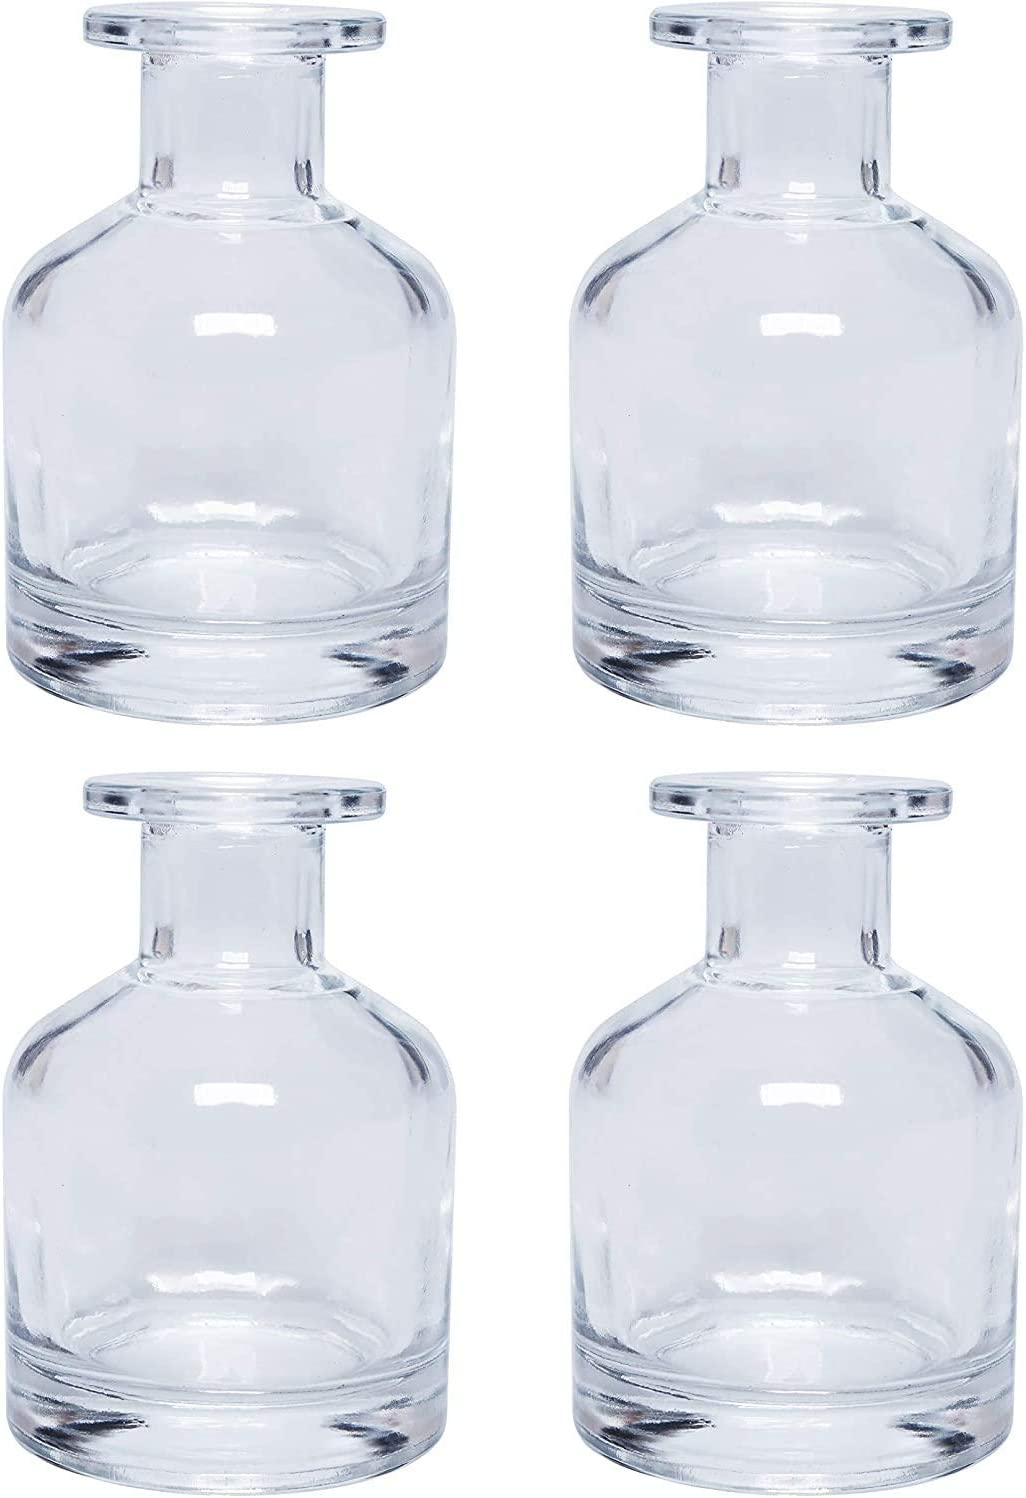 Hosley Set of 4 Glass Clear Bottles- 3.8 Inch High. Ideal Farmhouse Gift for Wedding, Party, Use with Essential Oils, Replacement Diffusers & Reed Sticks, DIY, Crafts, Spa